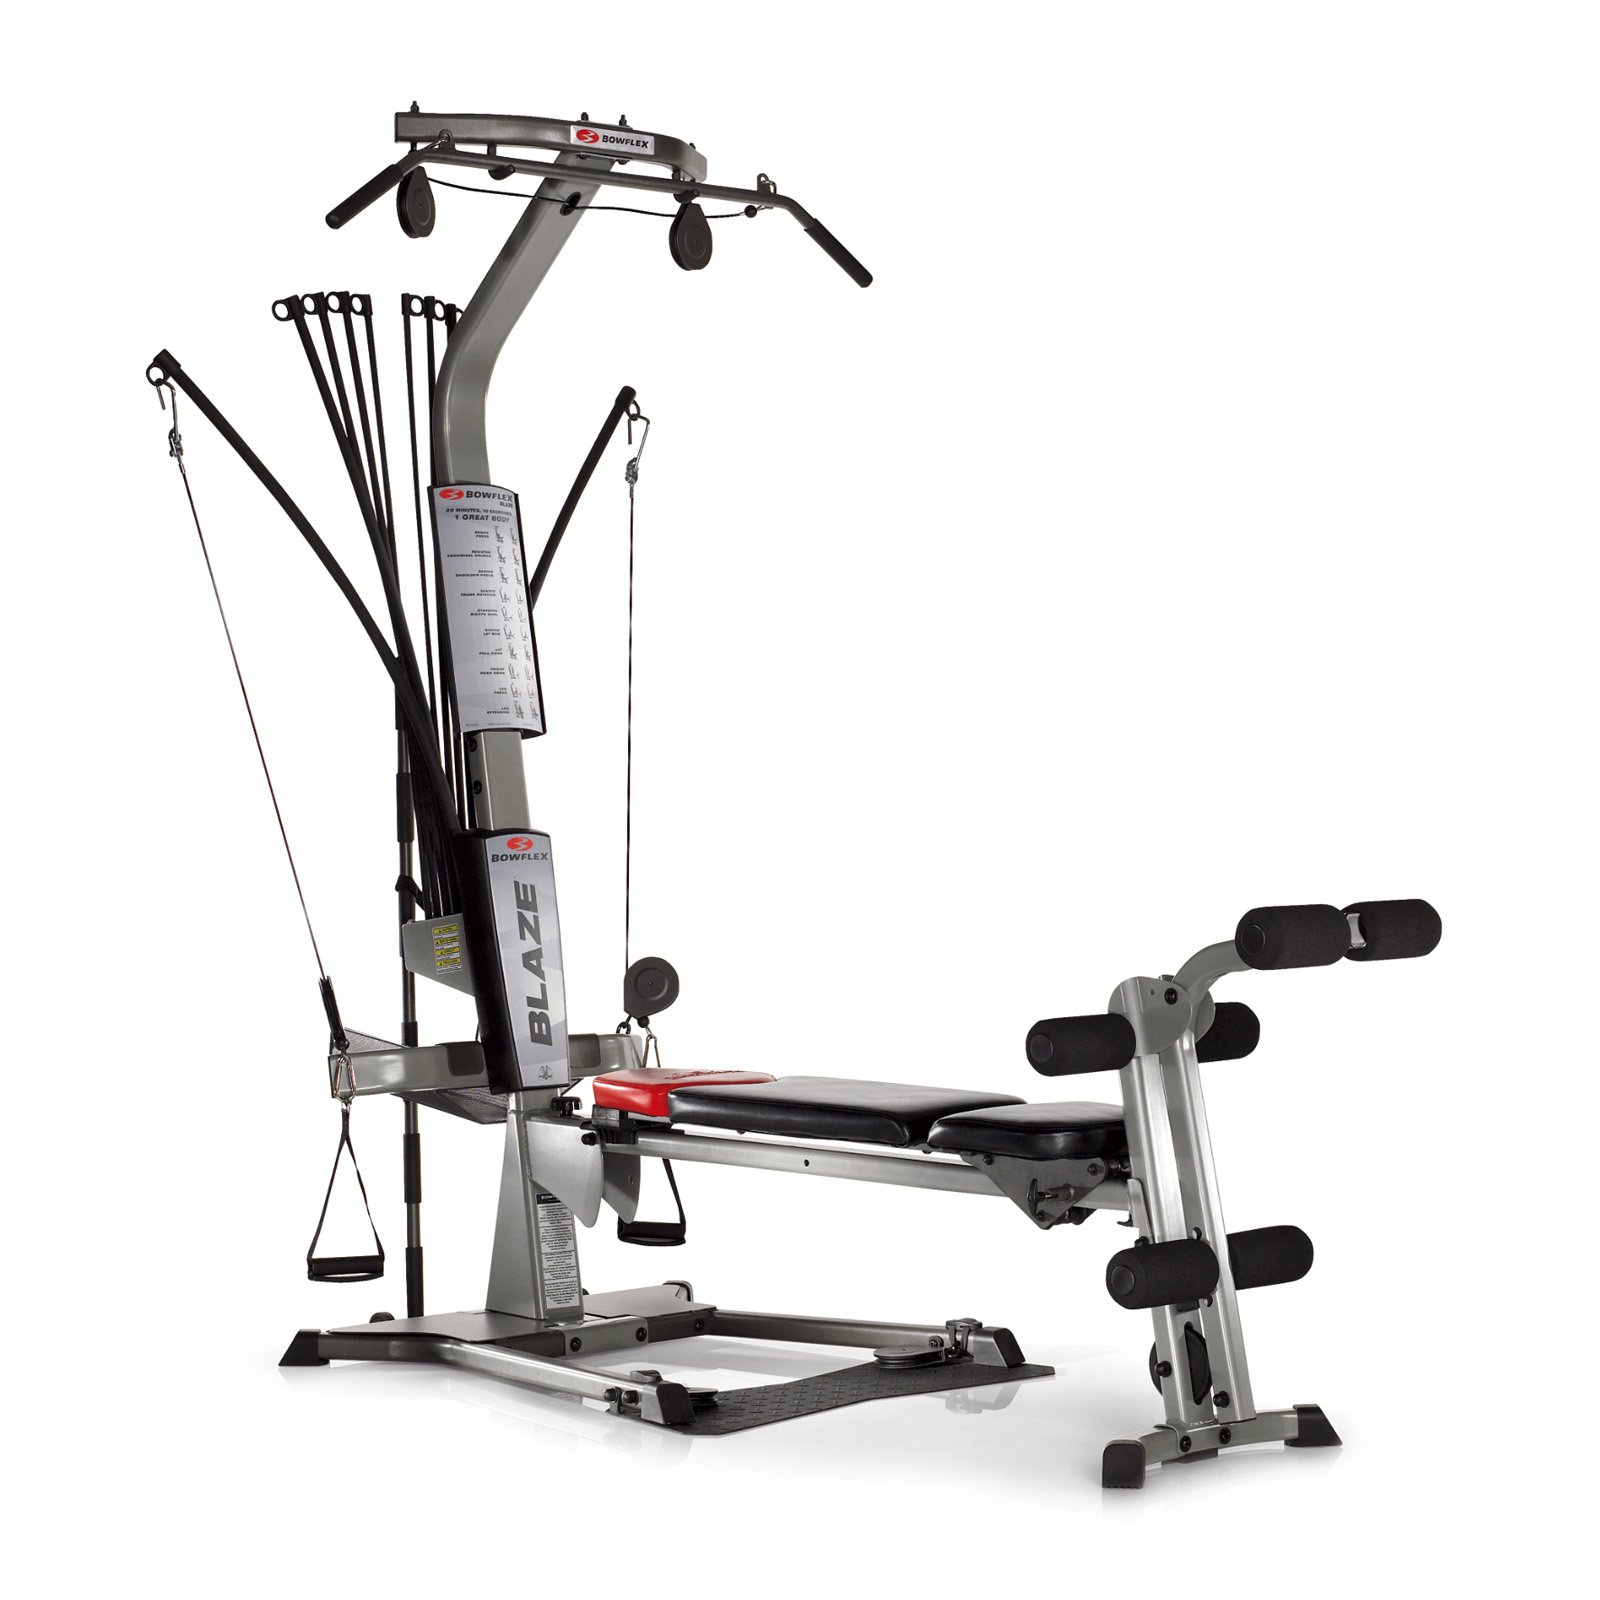 Bowflex blaze home gym review the best machine from